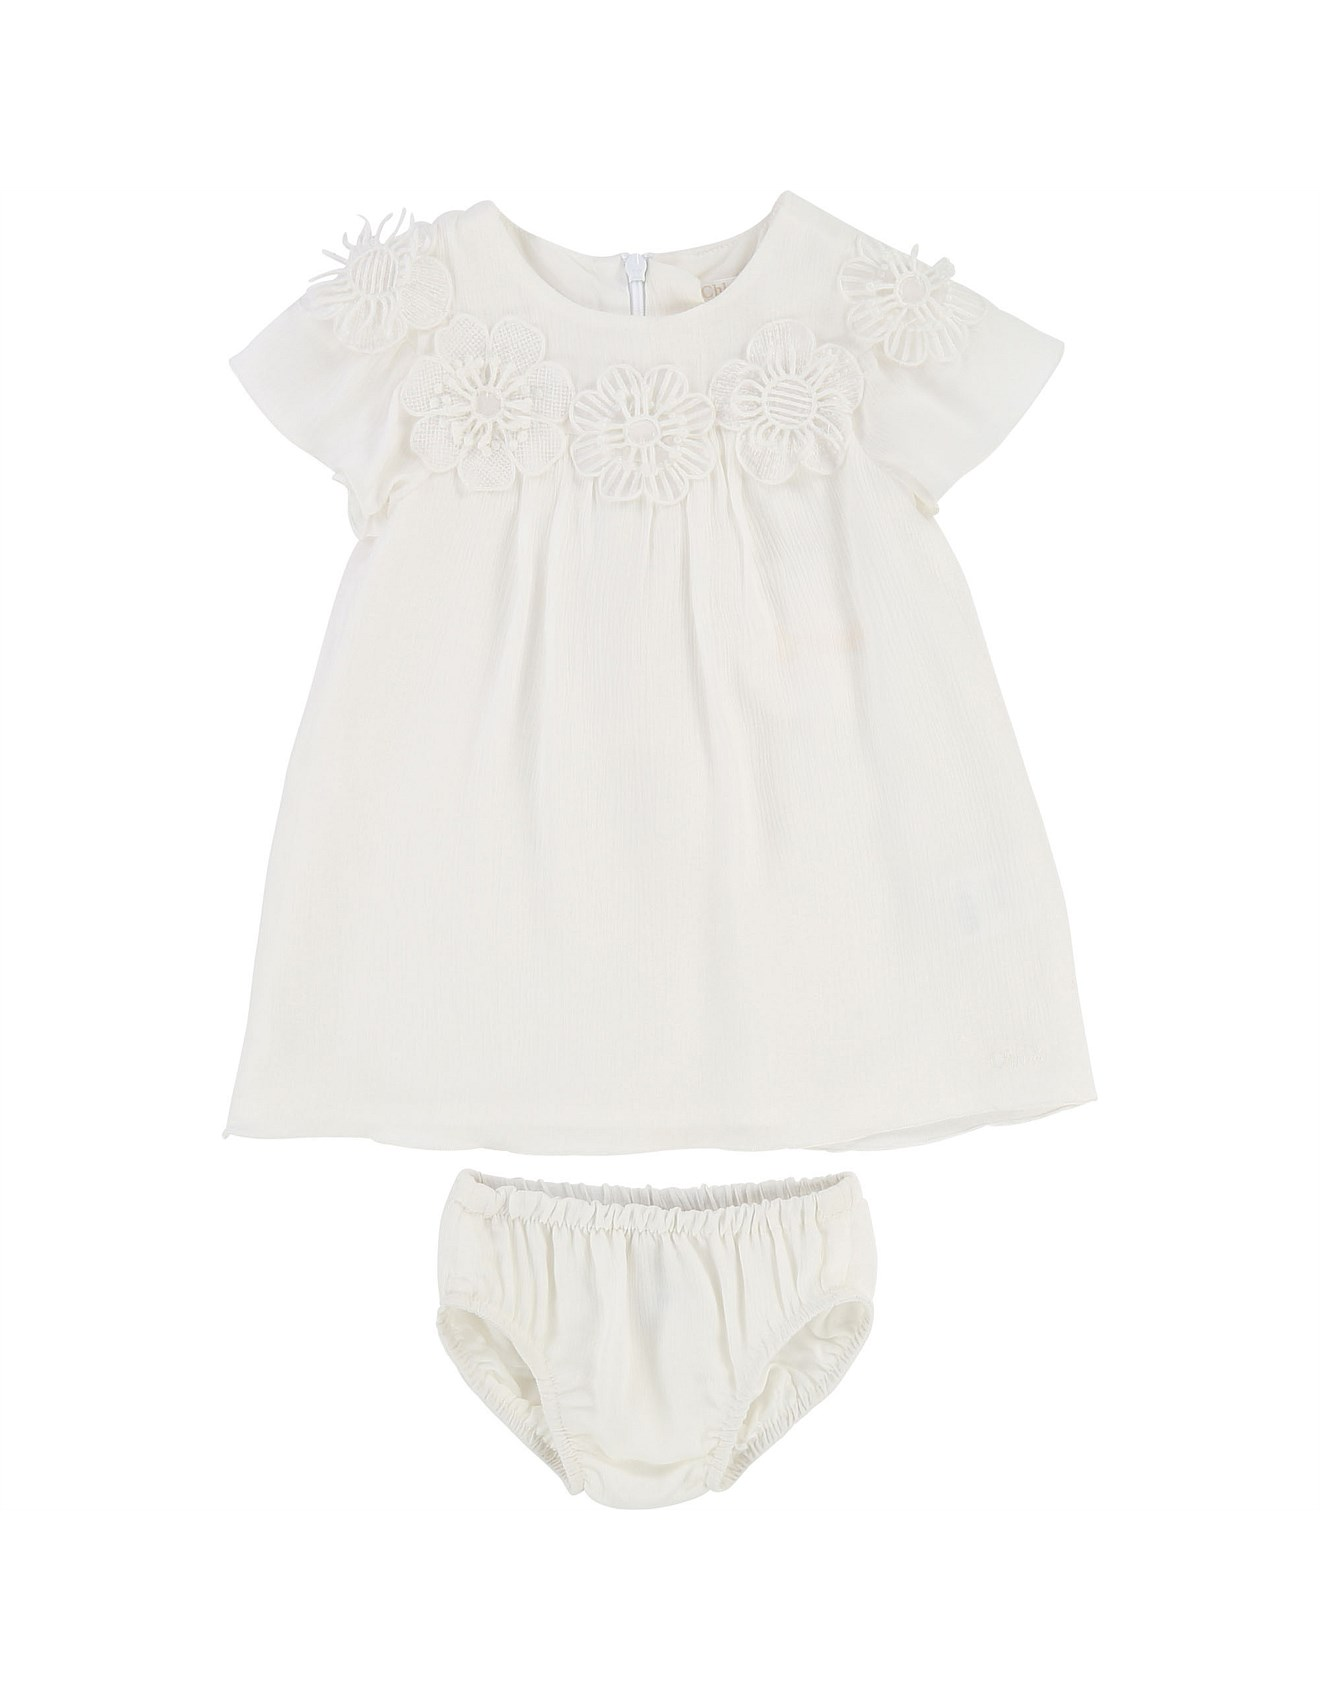 0f4a17f45 Baby Clothing